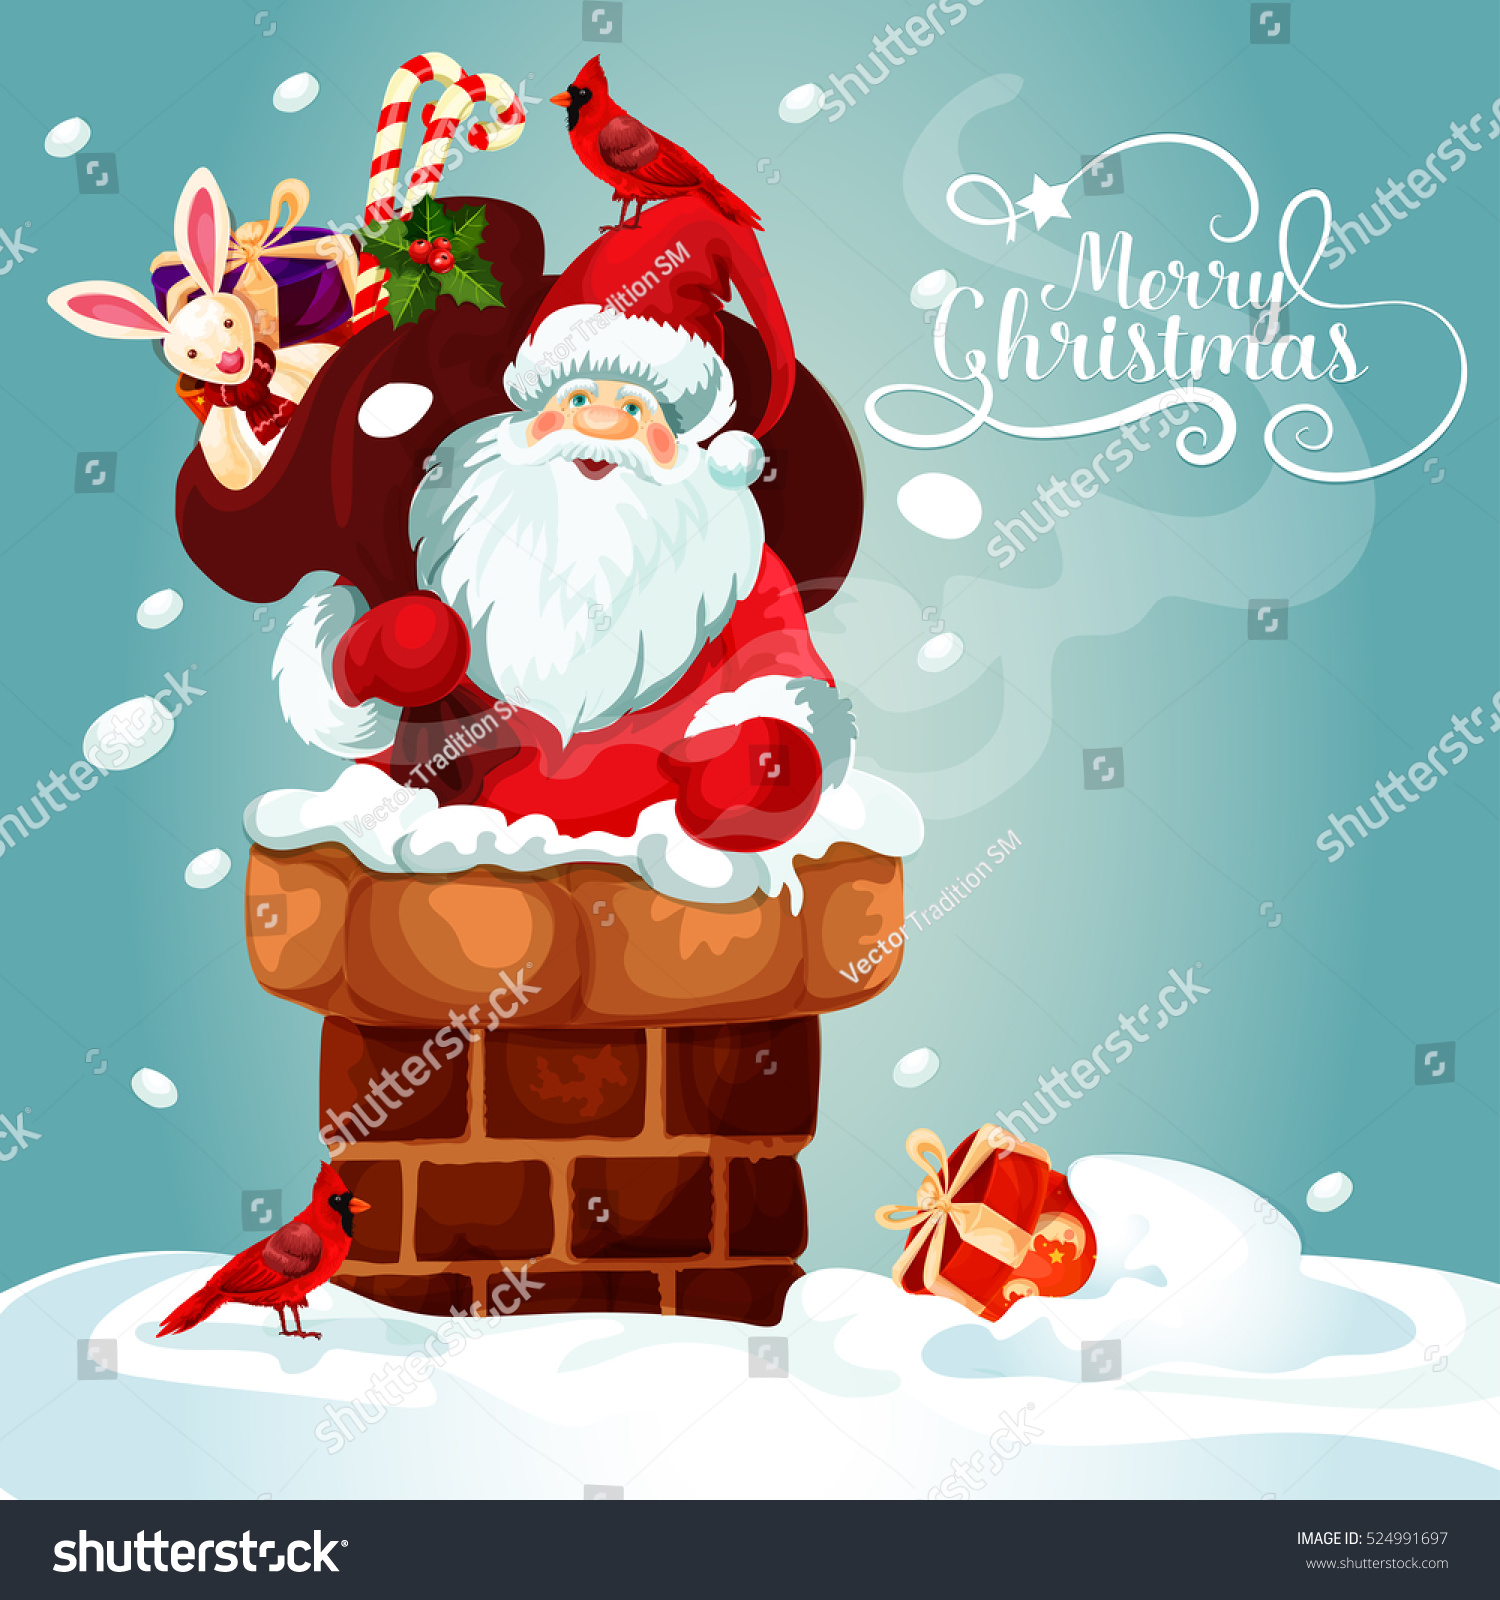 Christmas Card Santa Claus On Roof Stock Vector (Royalty Free ...